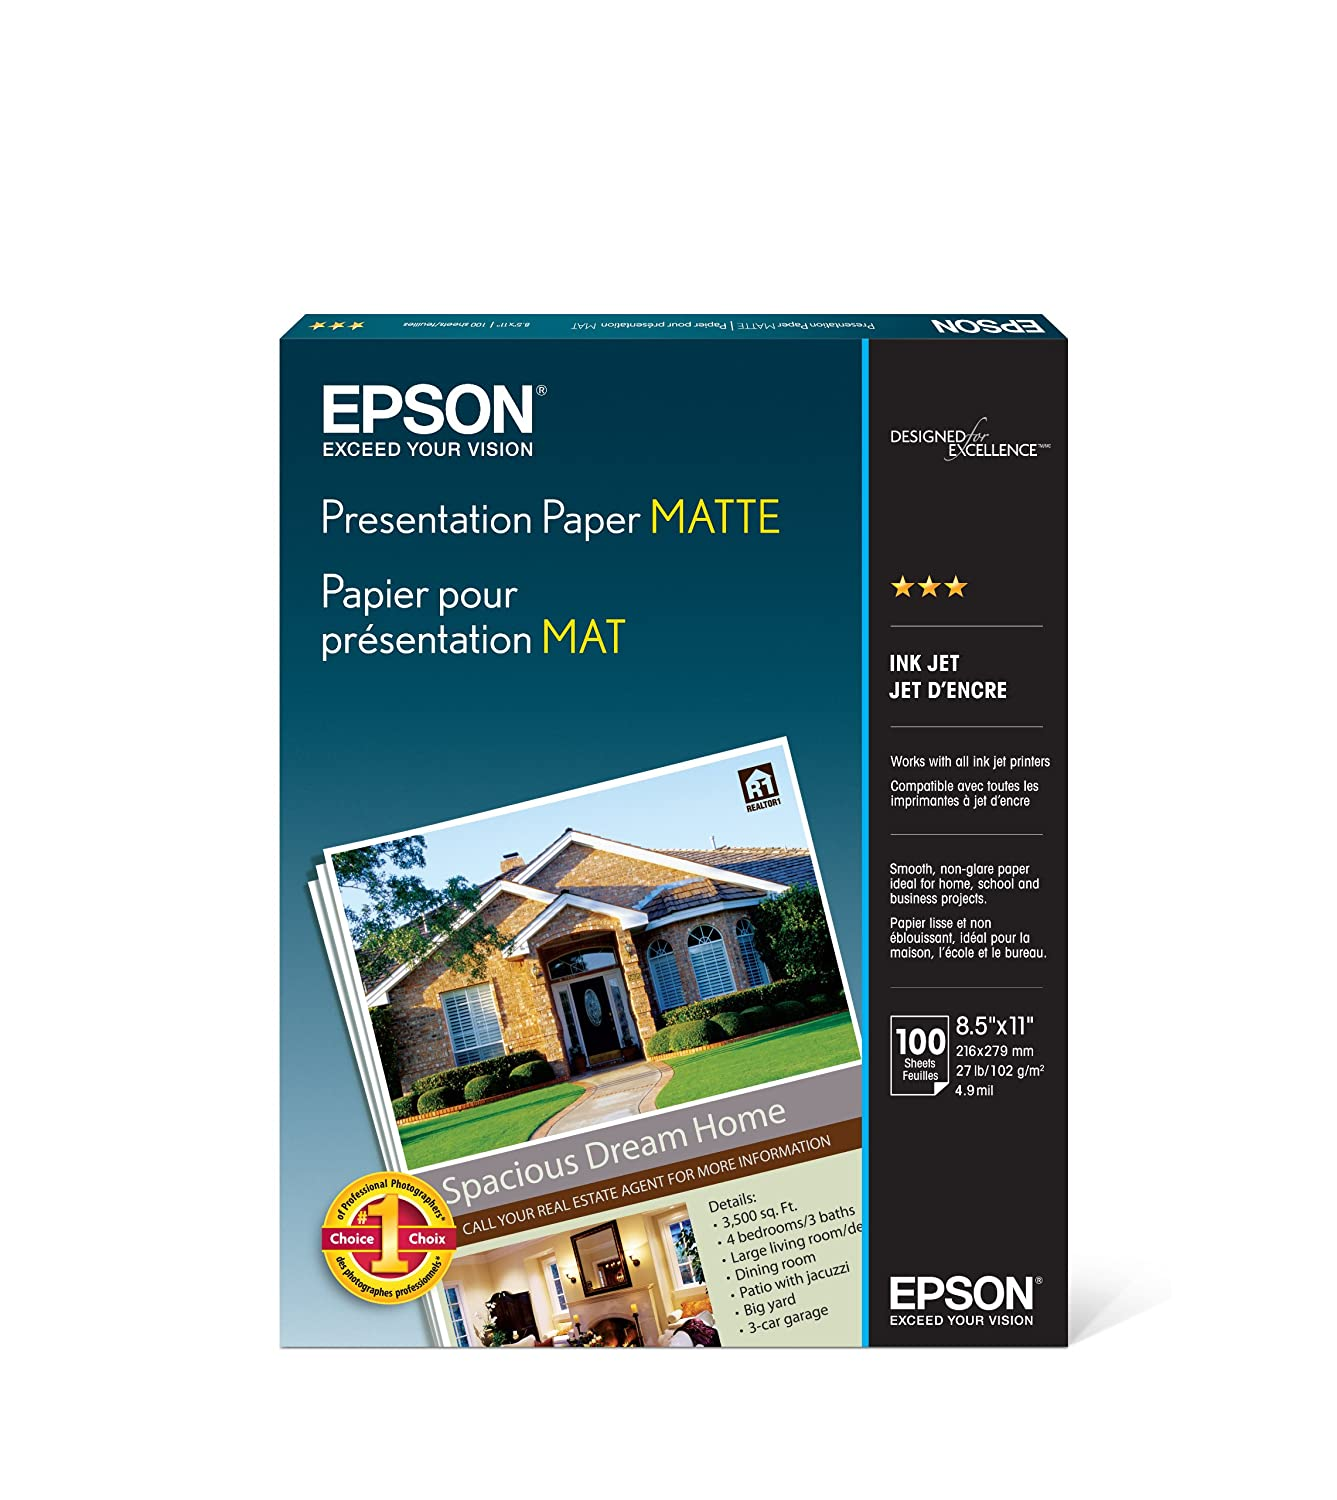 epson software for printers